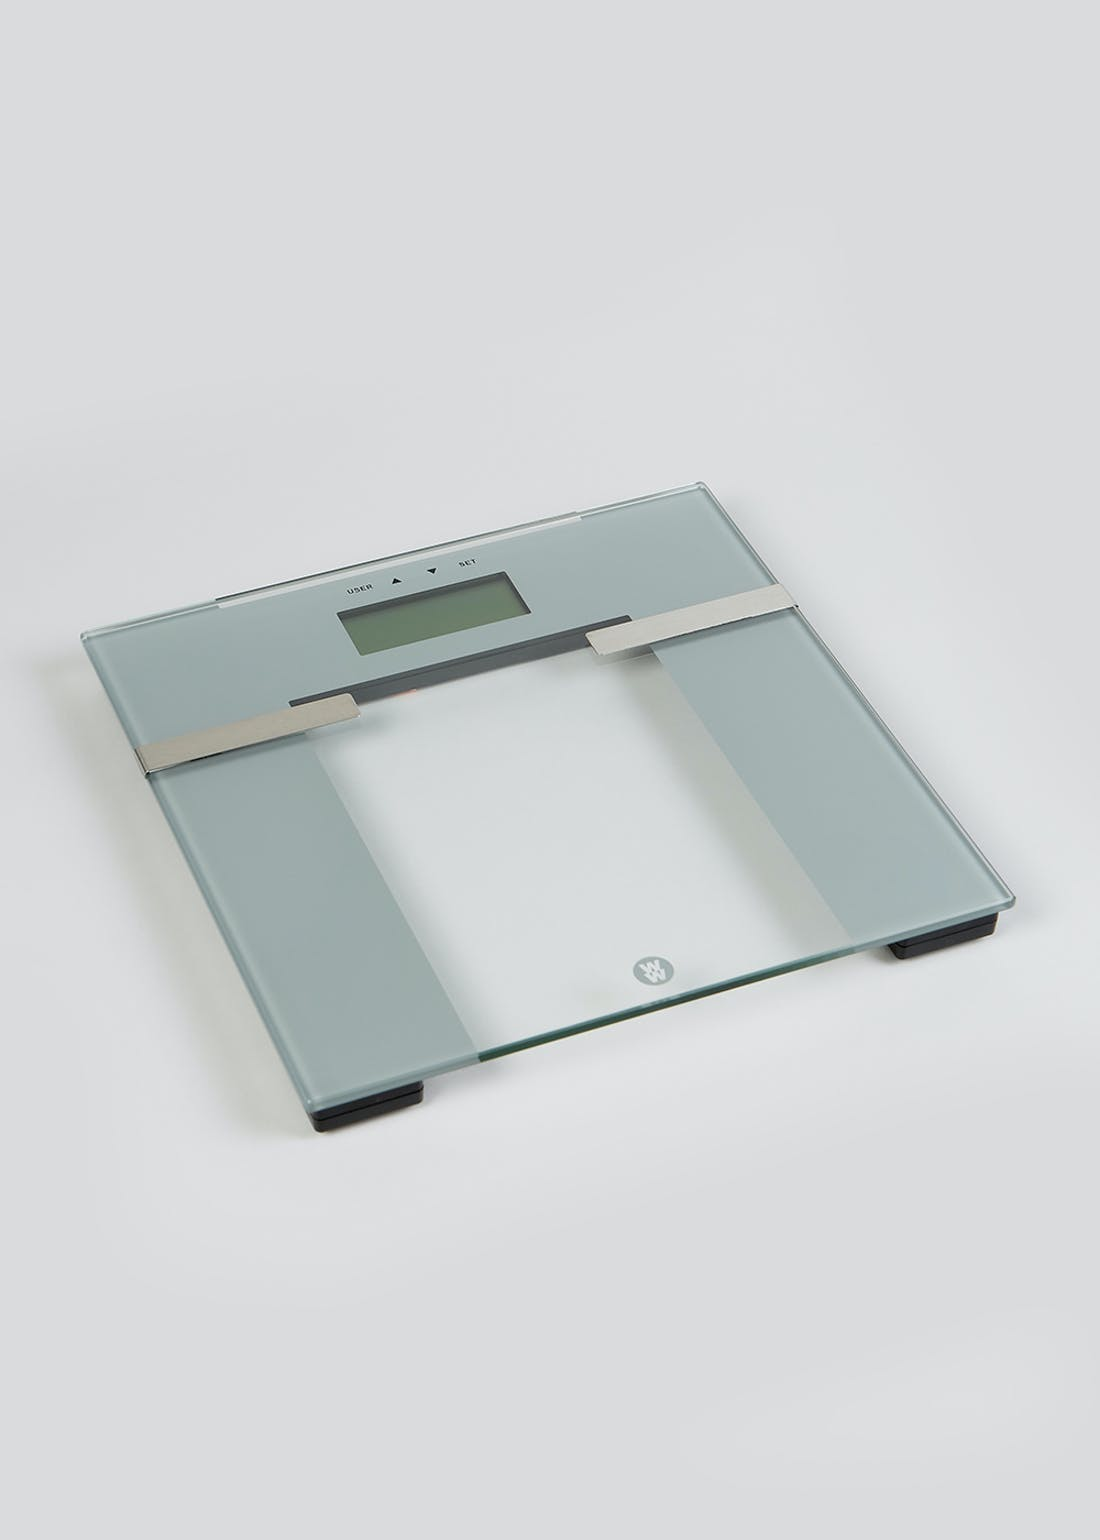 Weight Watchers Ultra Slim Weighing Scale